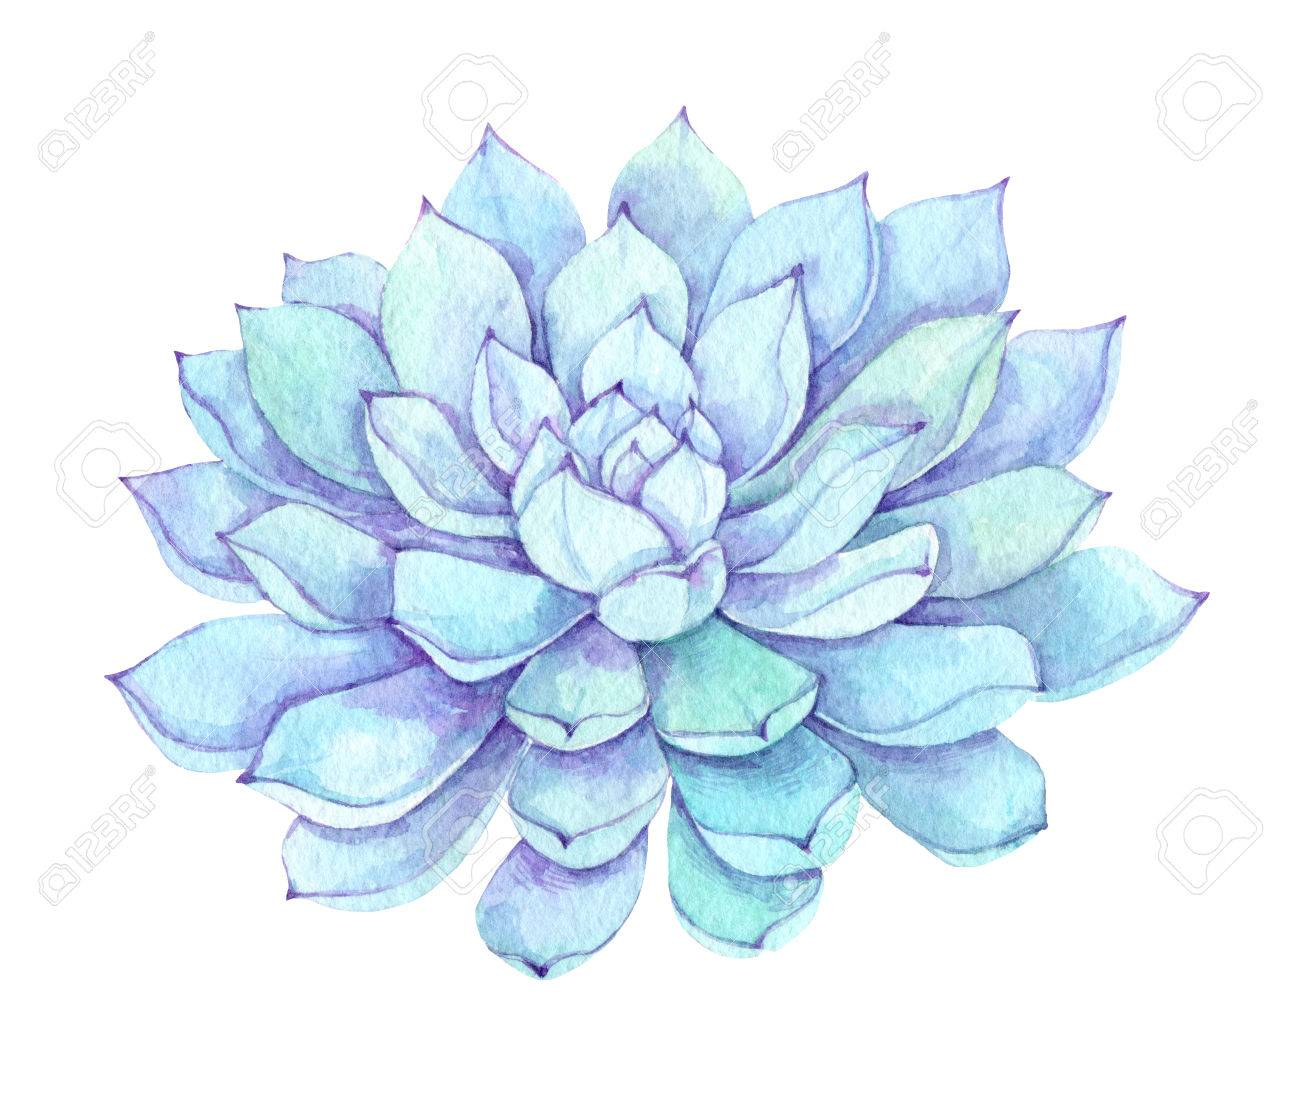 Watercolor Illustration Succulent Clipart Succulent And Cactus Stock Photo Picture And Royalty Free Image Image 84799936